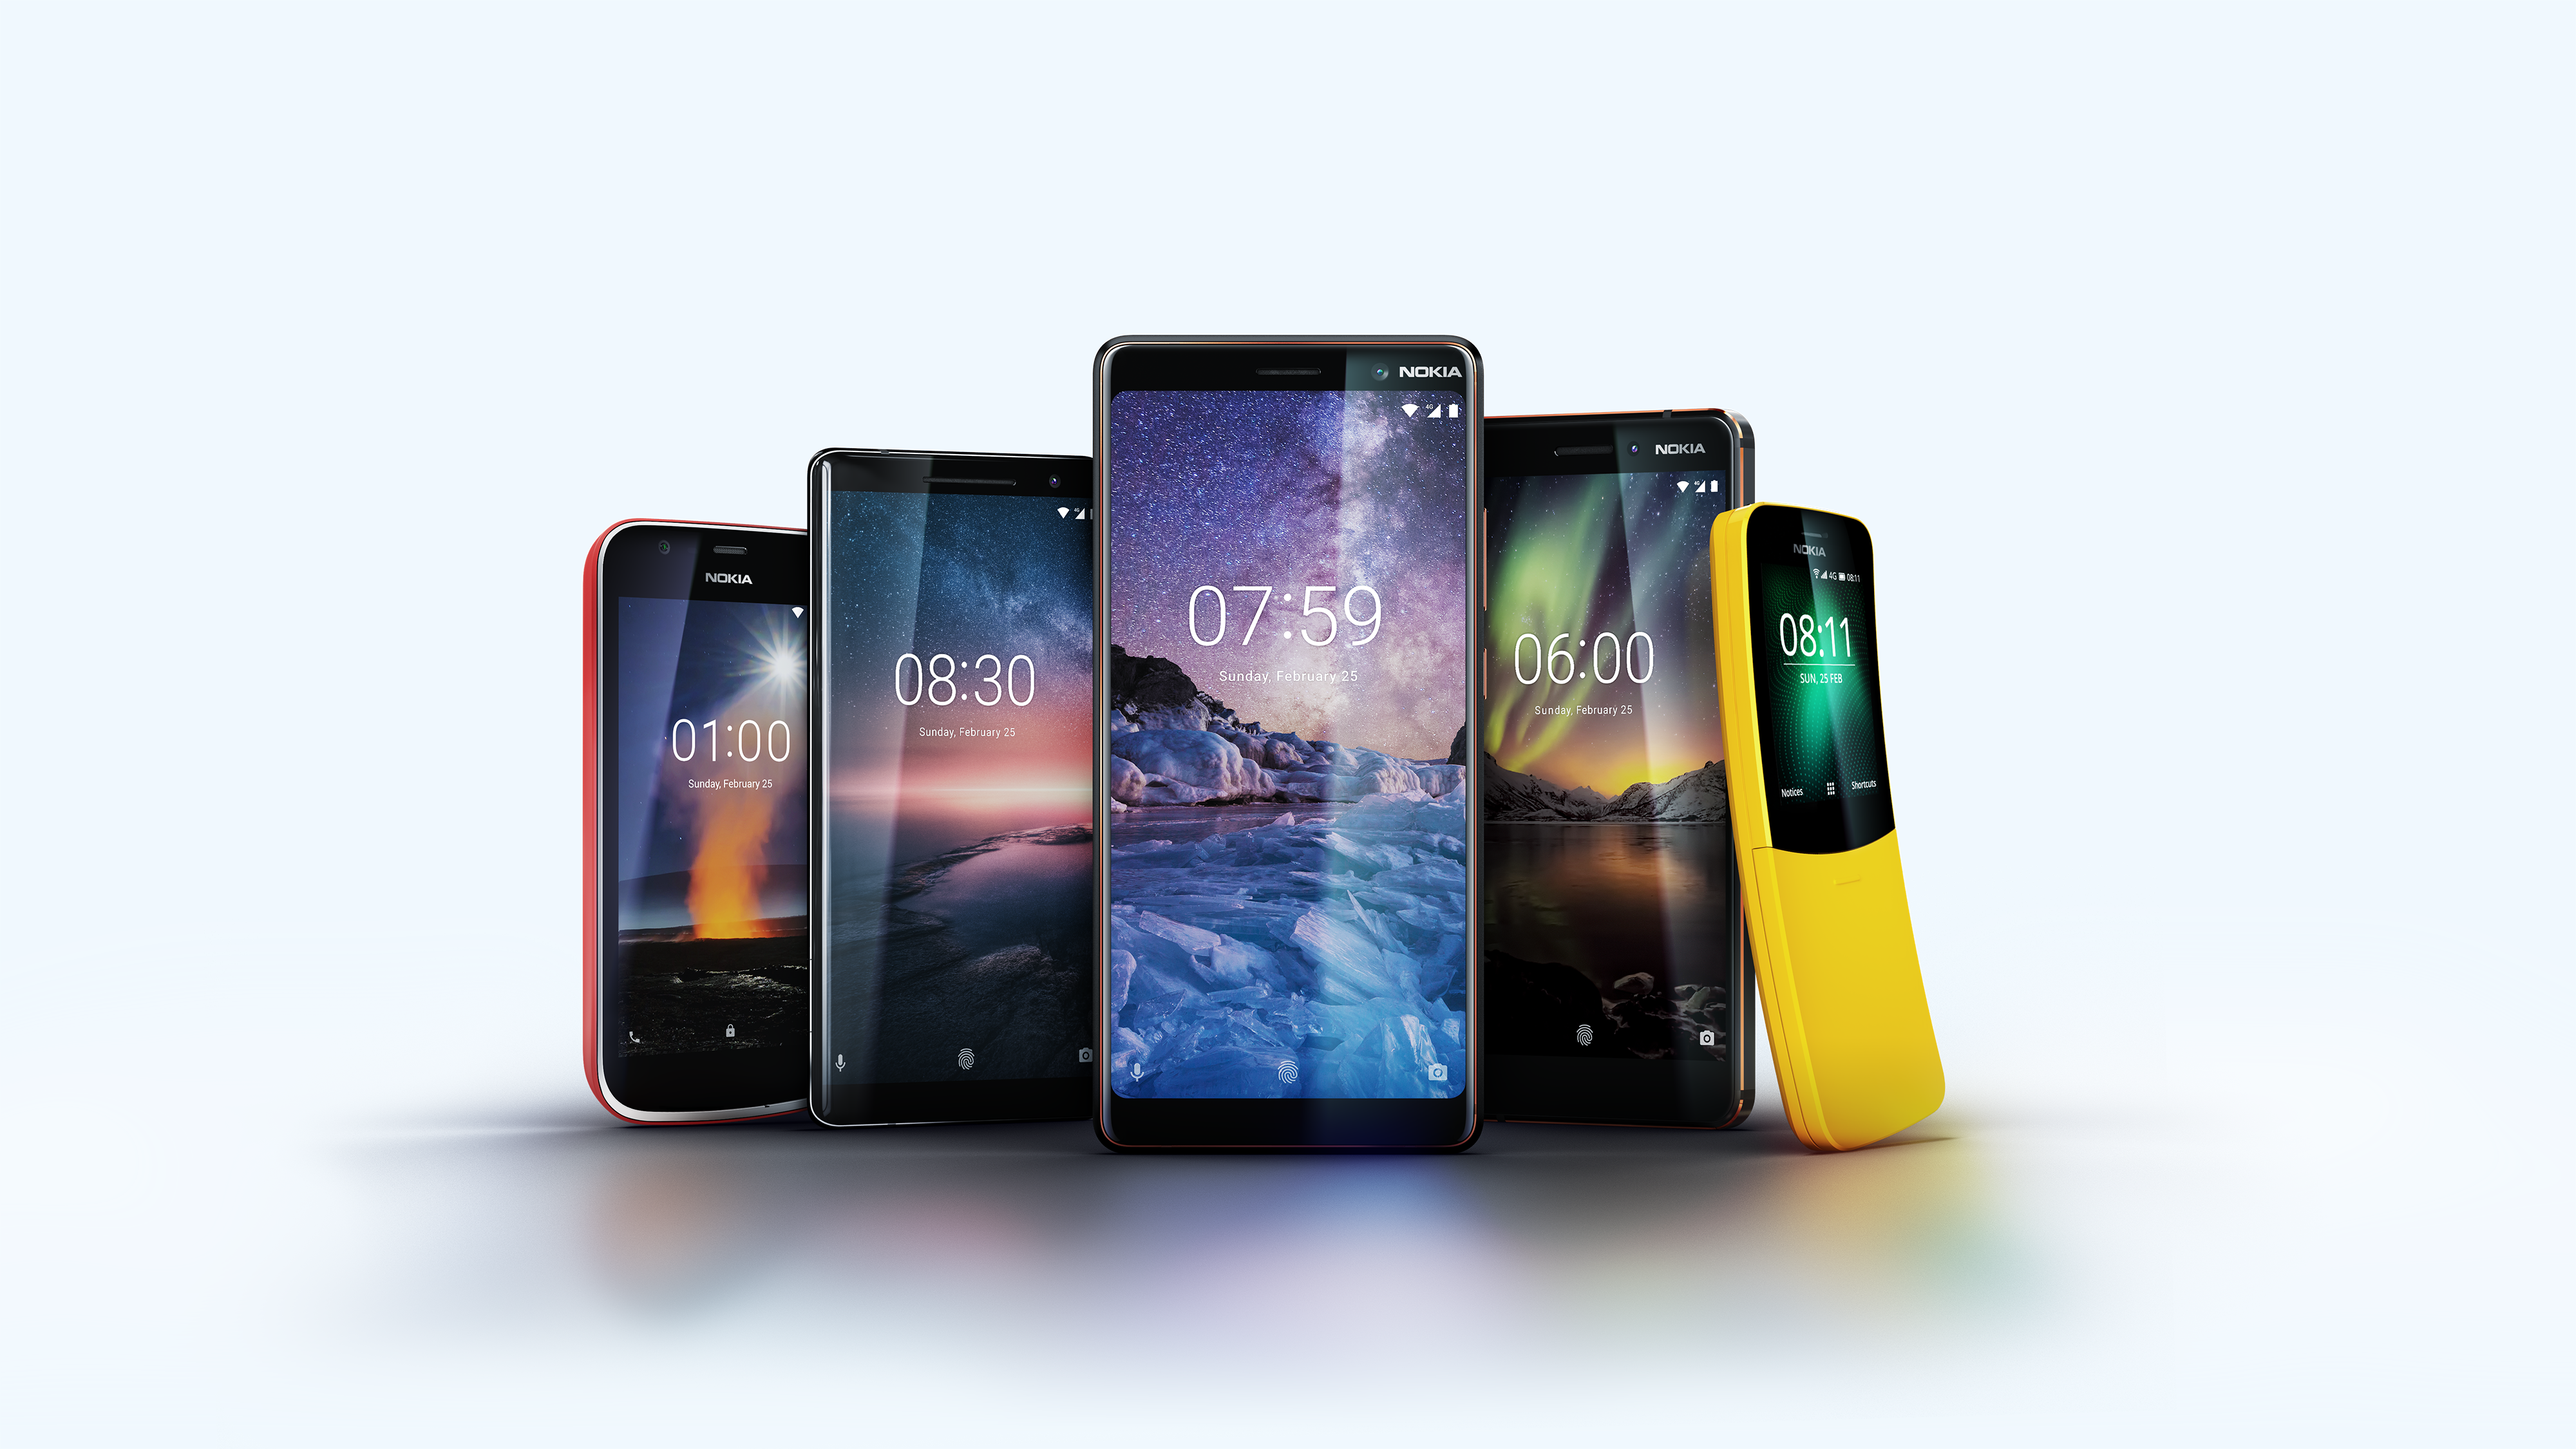 15 Best Android Smartphones of 2018 - Top Rated Android Phone Reviews